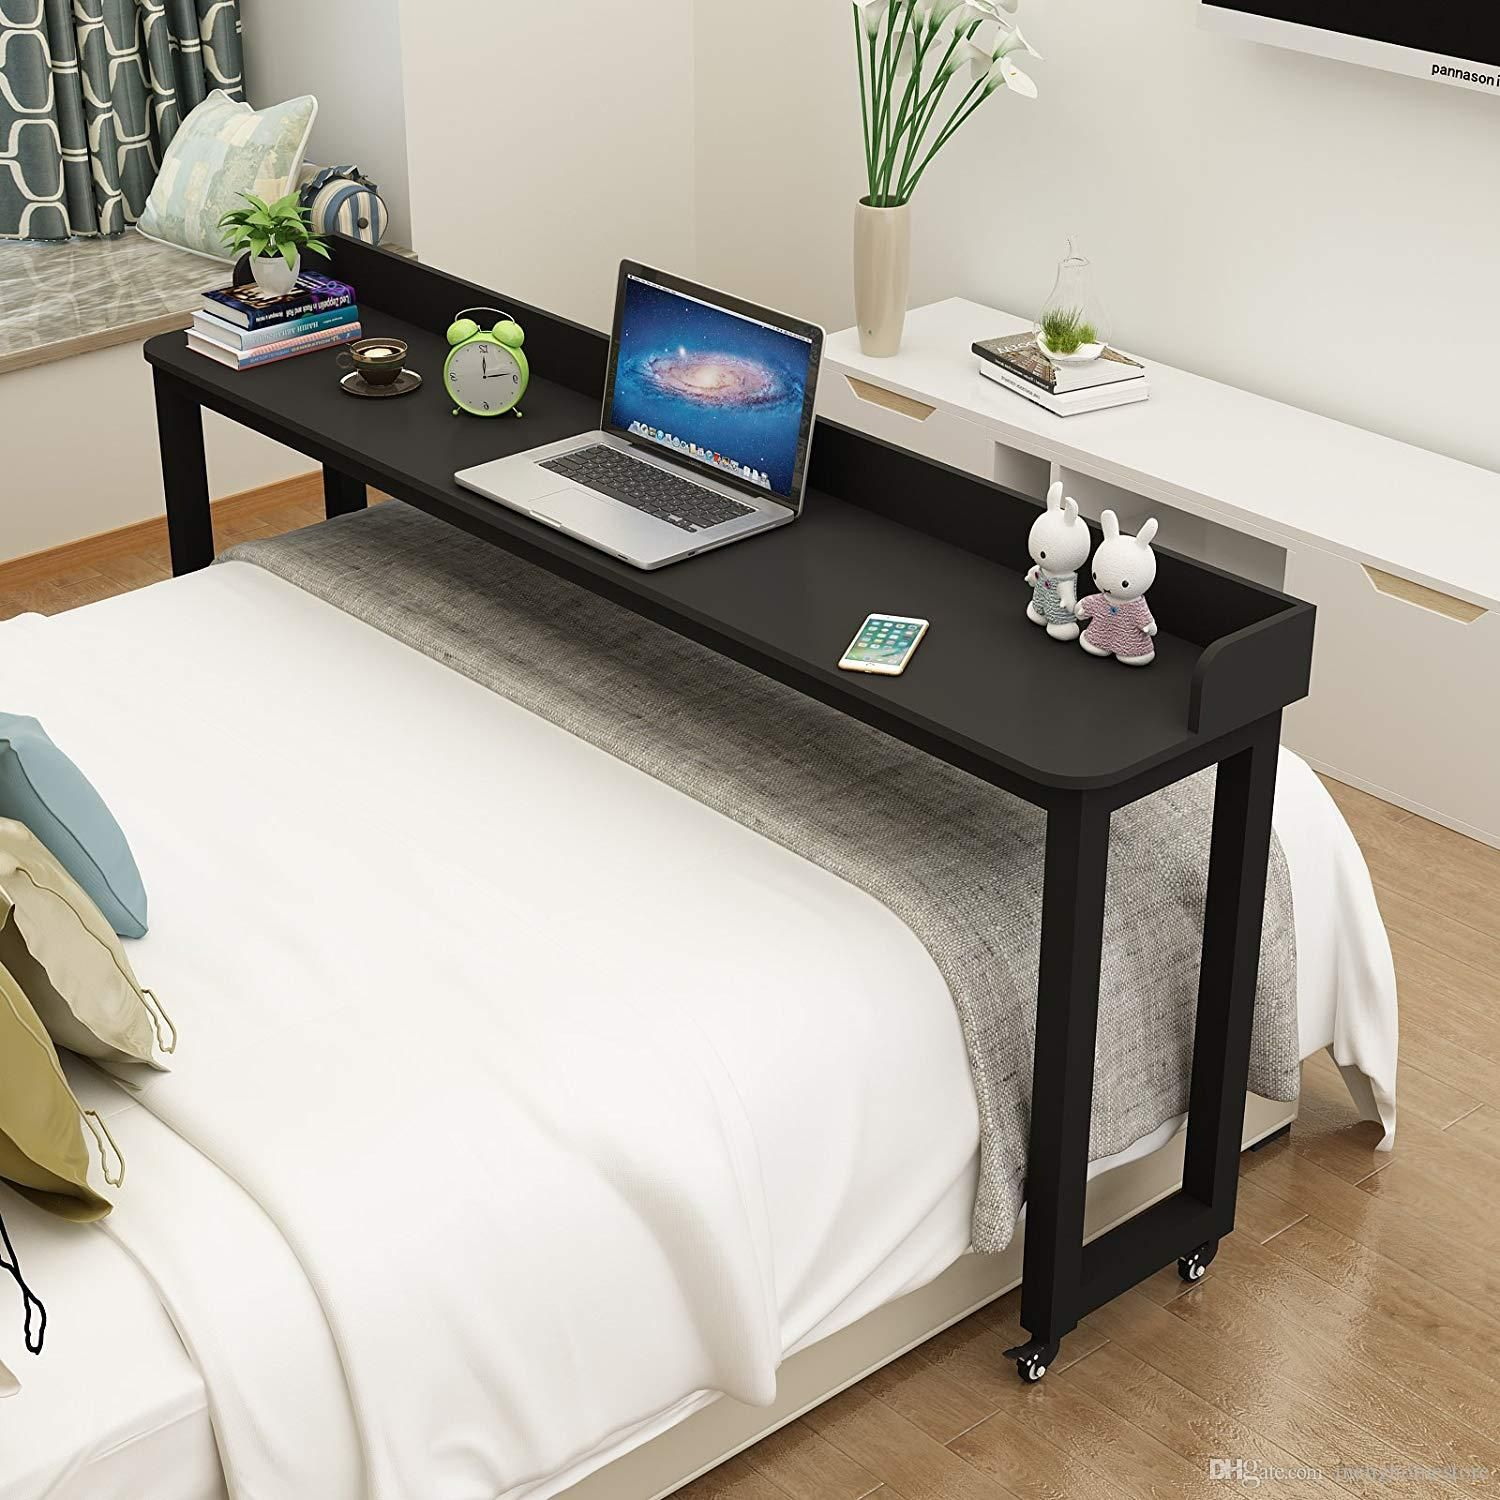 Build A Table Bed Instantly In 2020 Laptop Desk For Bed Bed Table Bed Table On Wheels